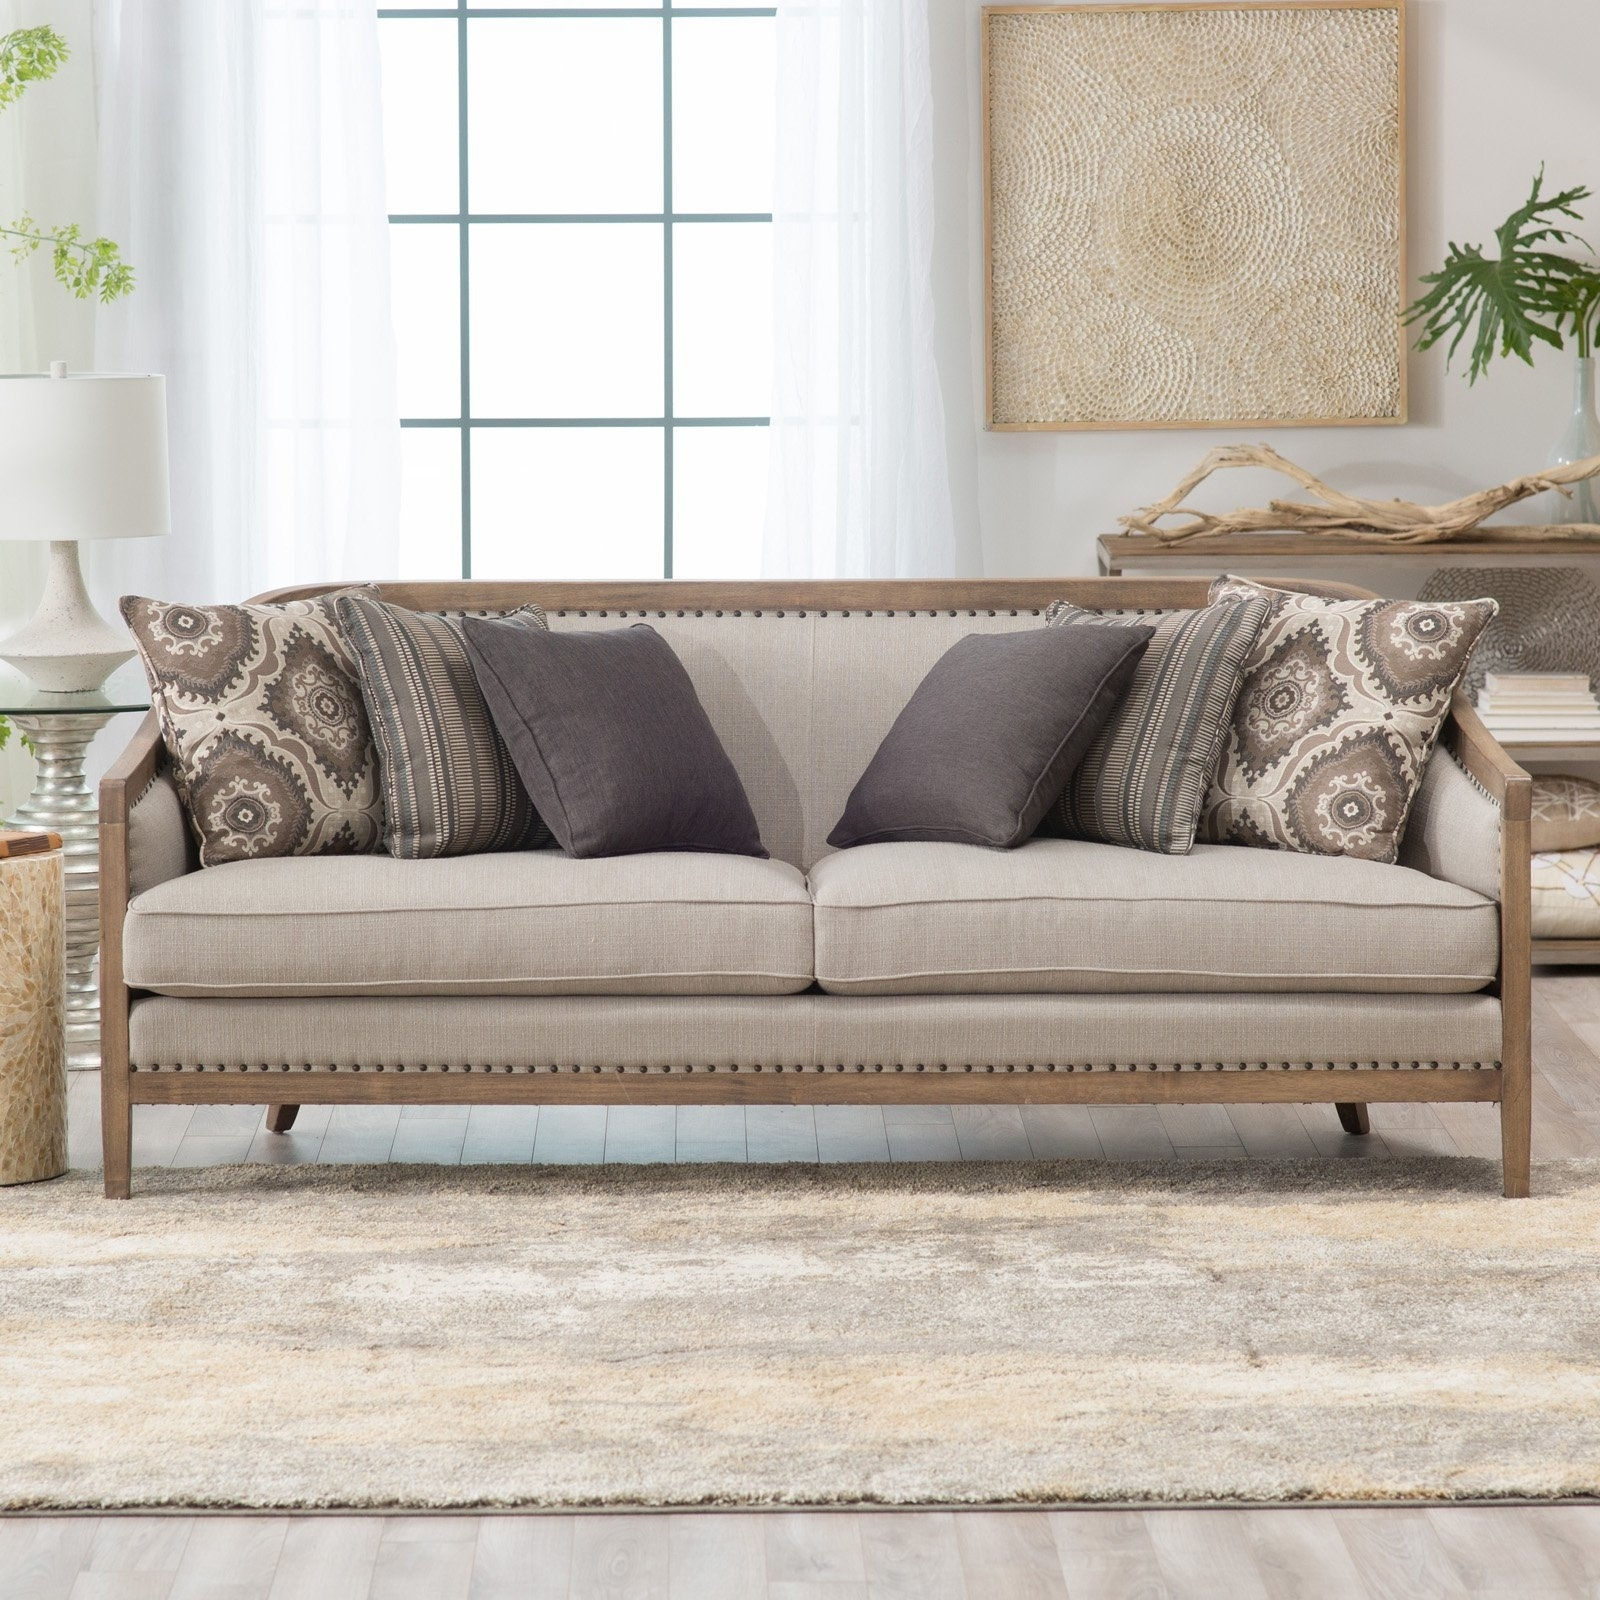 Belham Living Harper Sofa | Hayneedle throughout Harper Down 3 Piece Sectionals (Image 4 of 30)